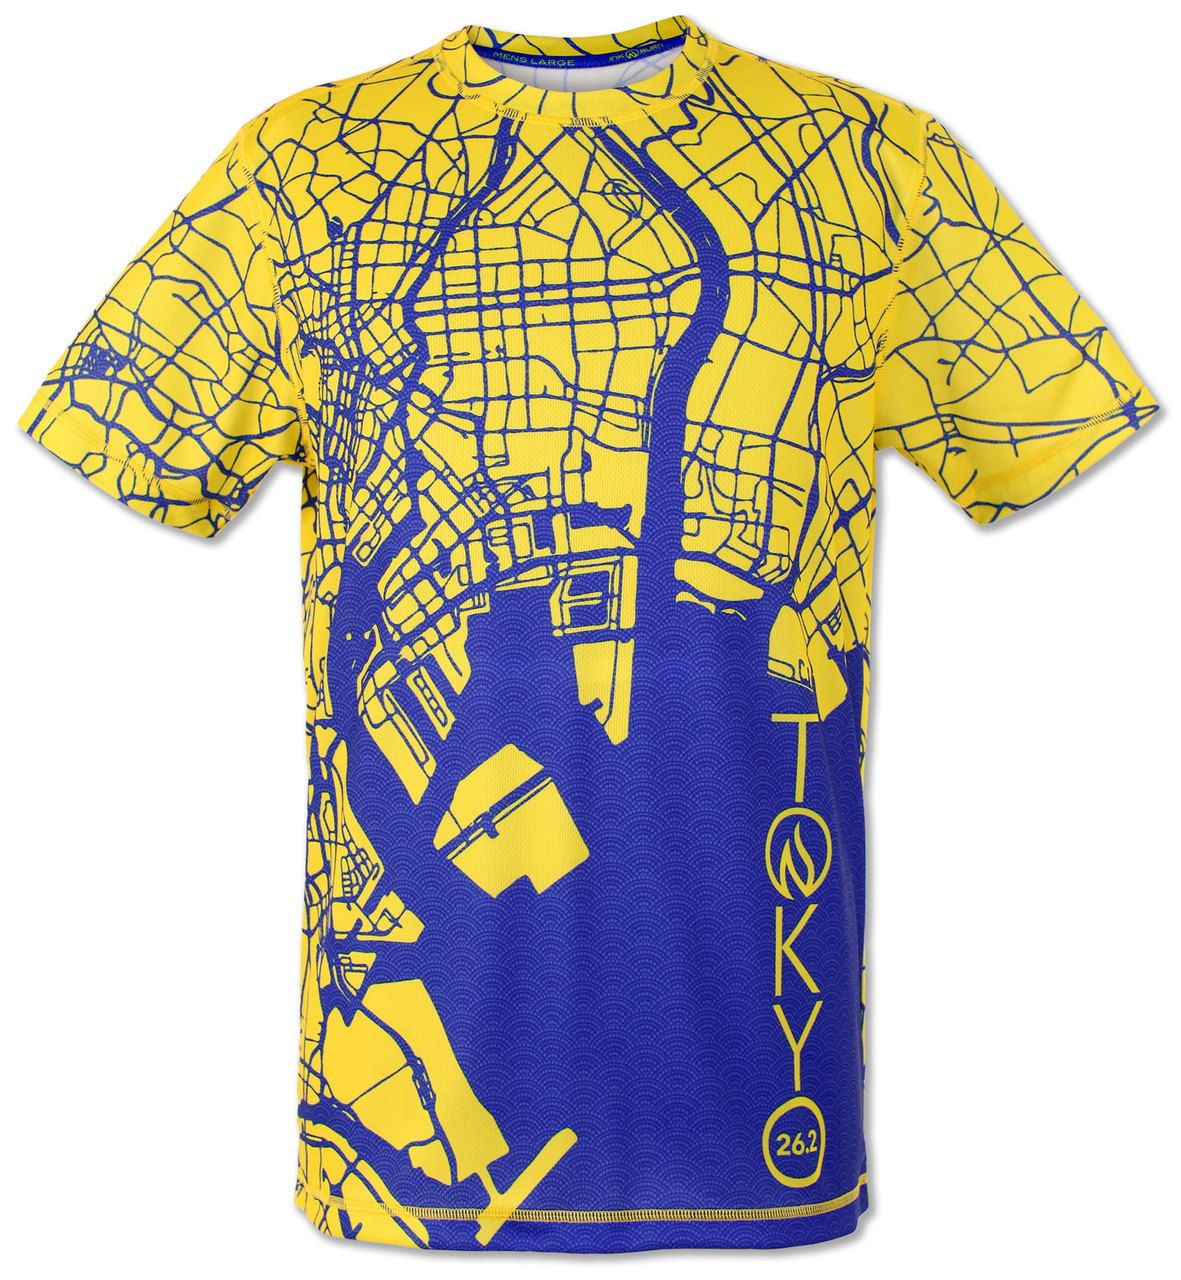 Mens Tokyo Marathon Tech Shirt Graphic And Product Marathon